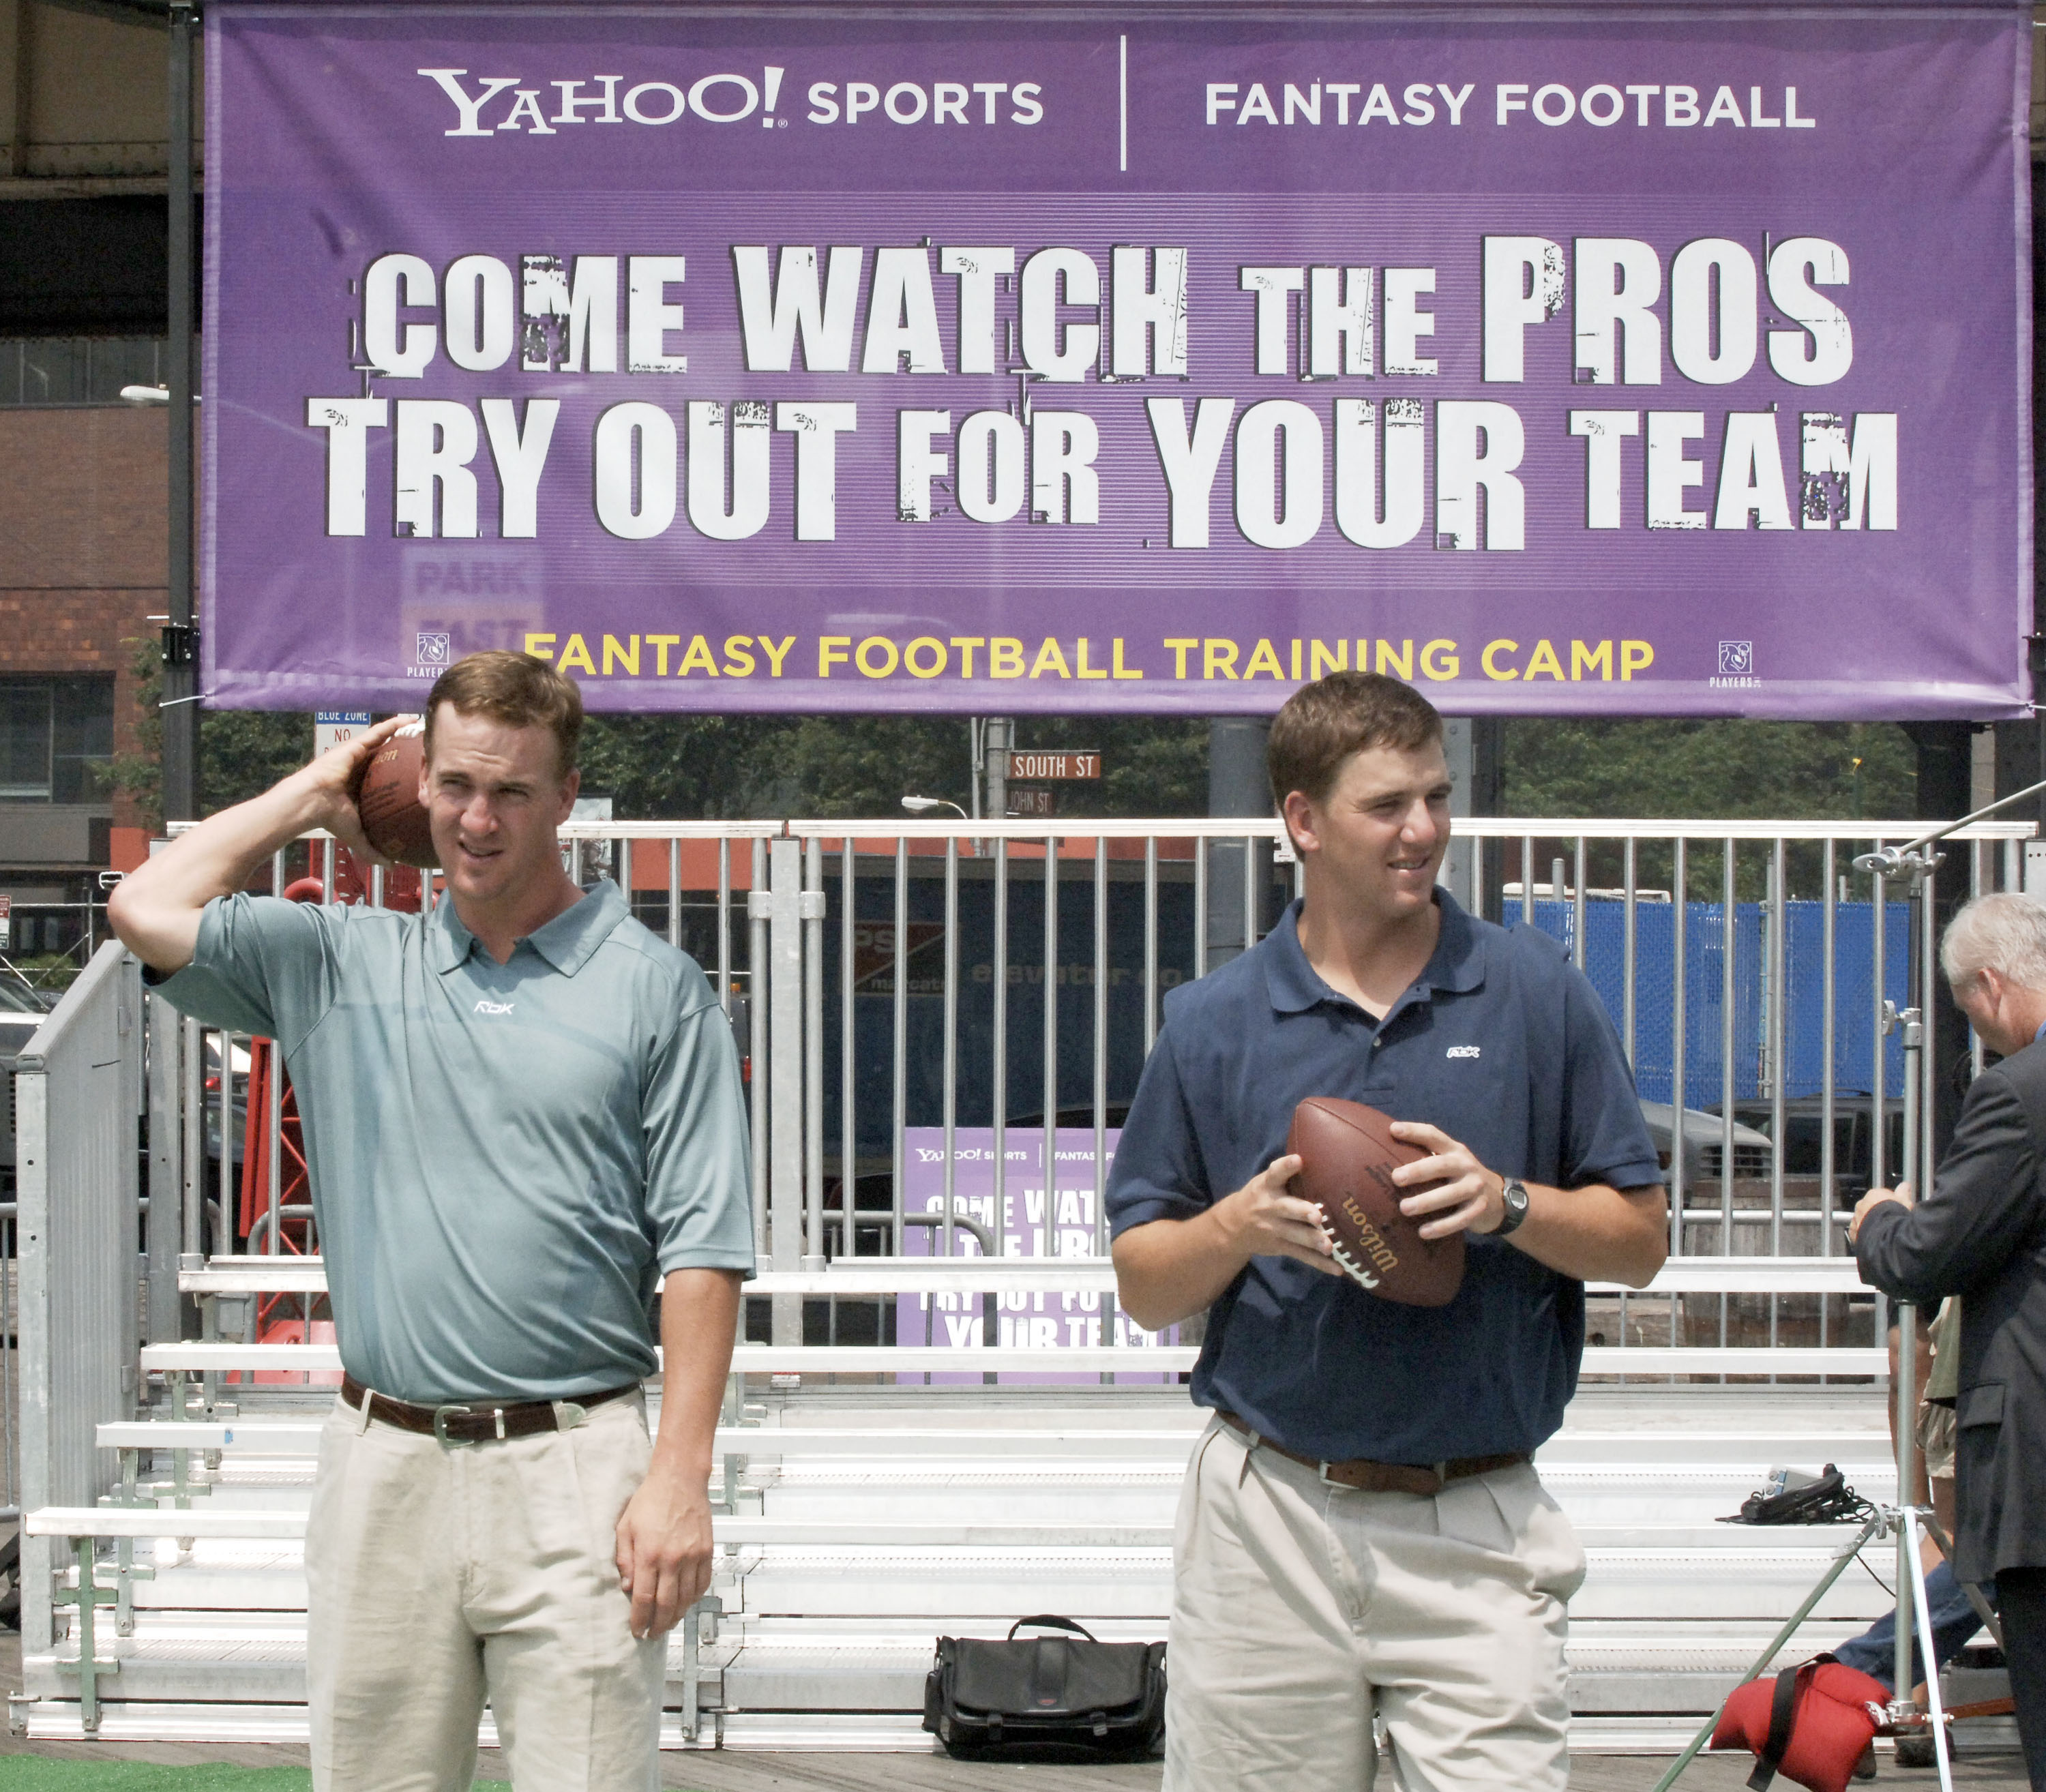 Peyton Manning and Eli Manning at the 2005 Fantasy Football Training Camp held at the South Street Seaport on July 18, 2005 in New York City (Photo by Jemal Countess/Getty Images)